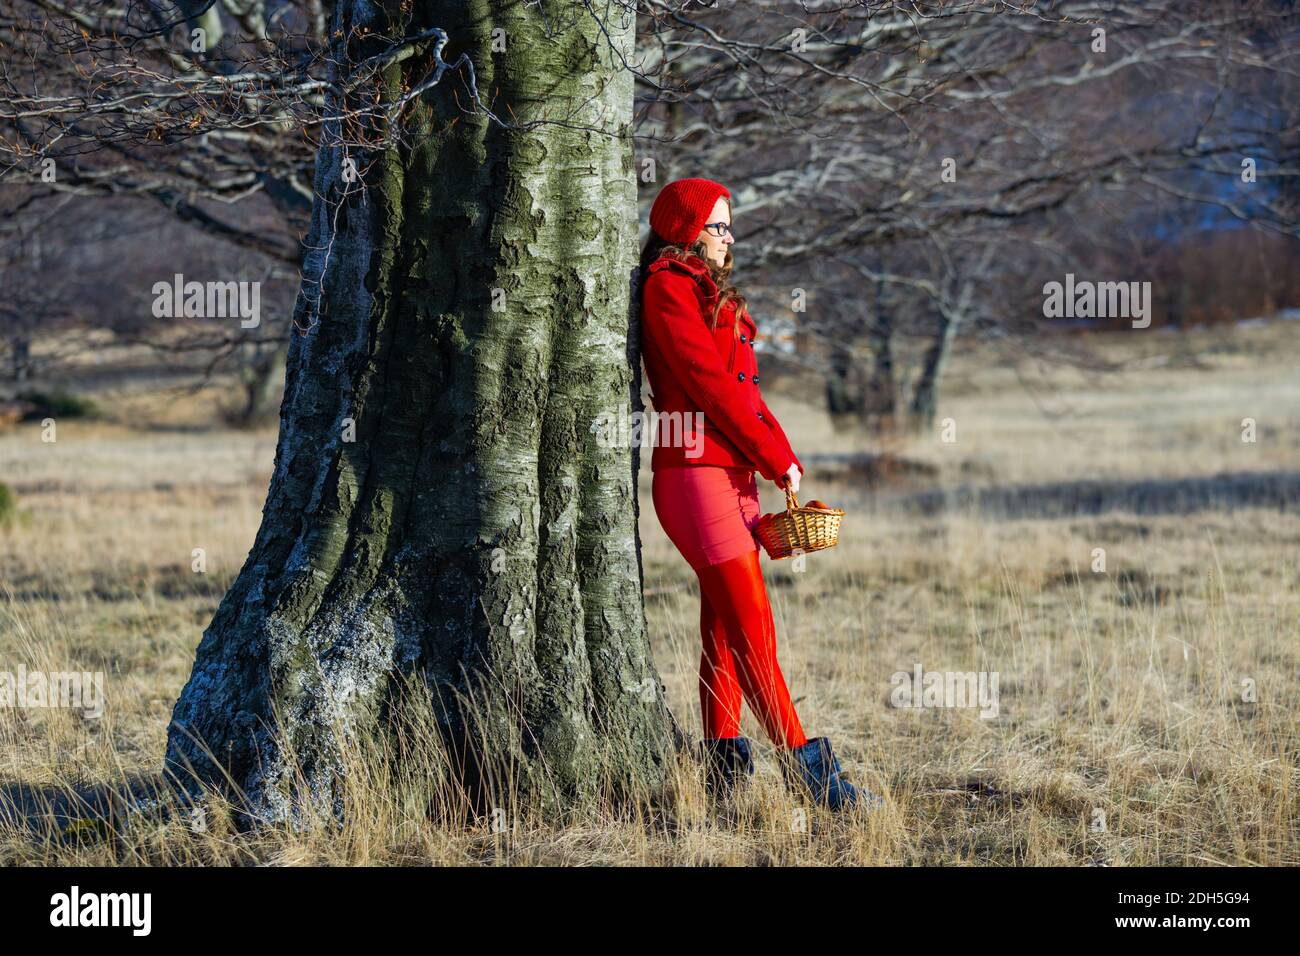 Teengirl countrygirl in countryside Red clothing outfit aka Red Riding Hood with backet in hands holding hold hand standing inclined on big tree Stock Photo